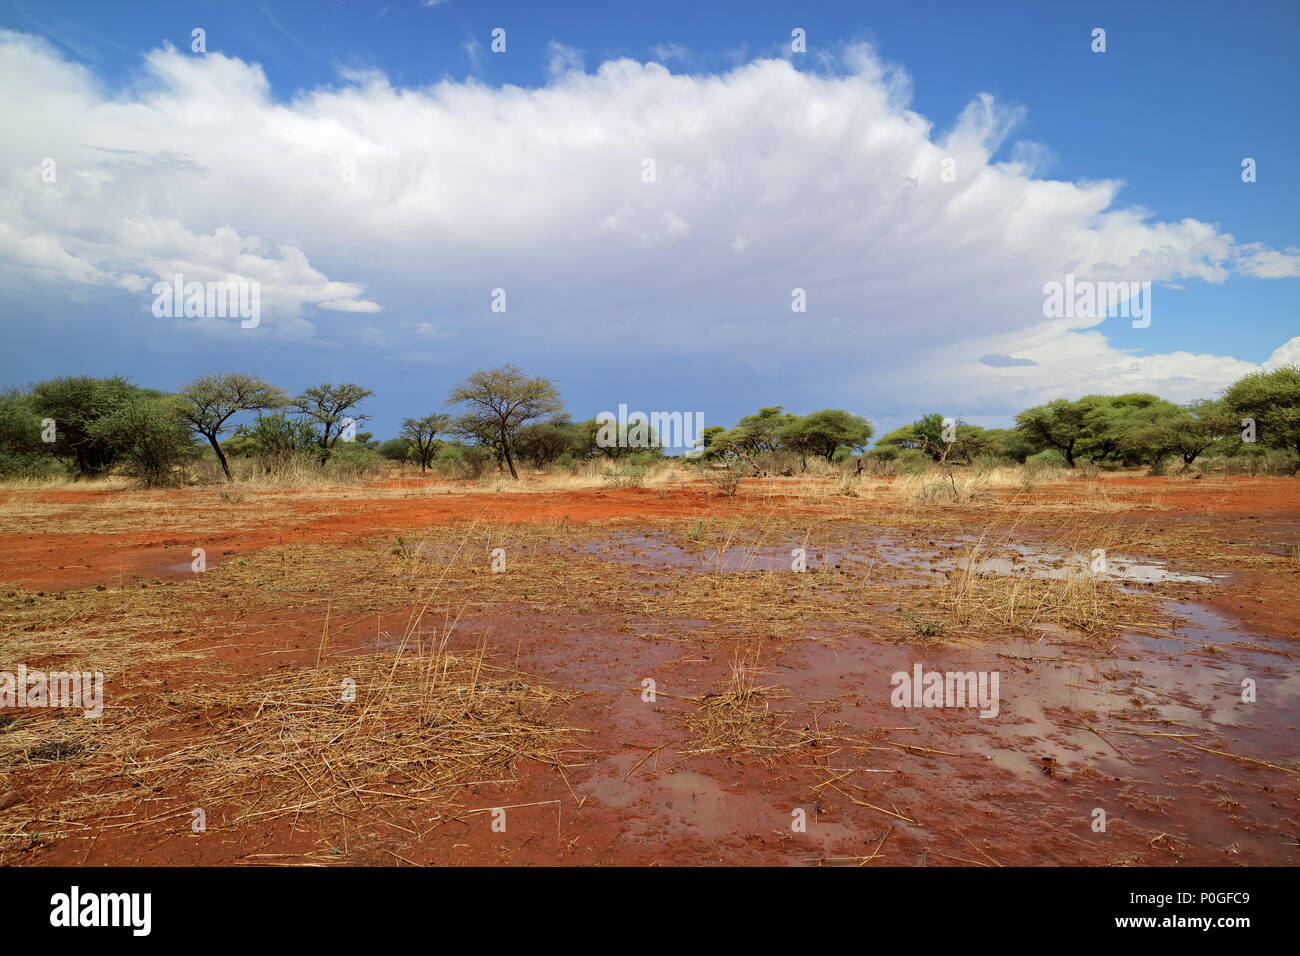 African savannah landscape after rains, South Africa Stock Photo